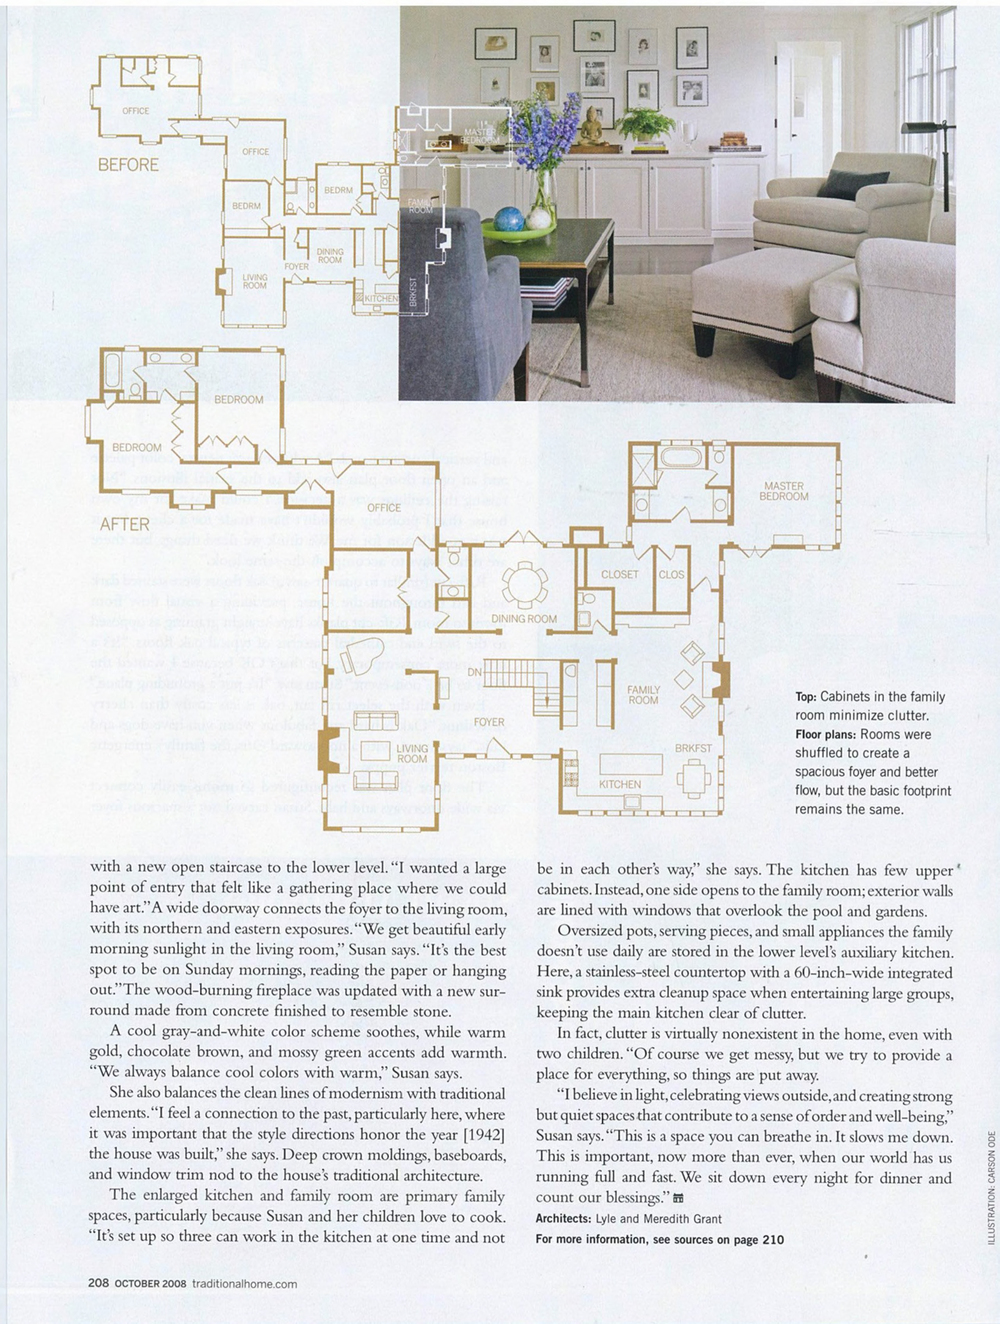 TraditionalHome-Oct2008_5.jpg